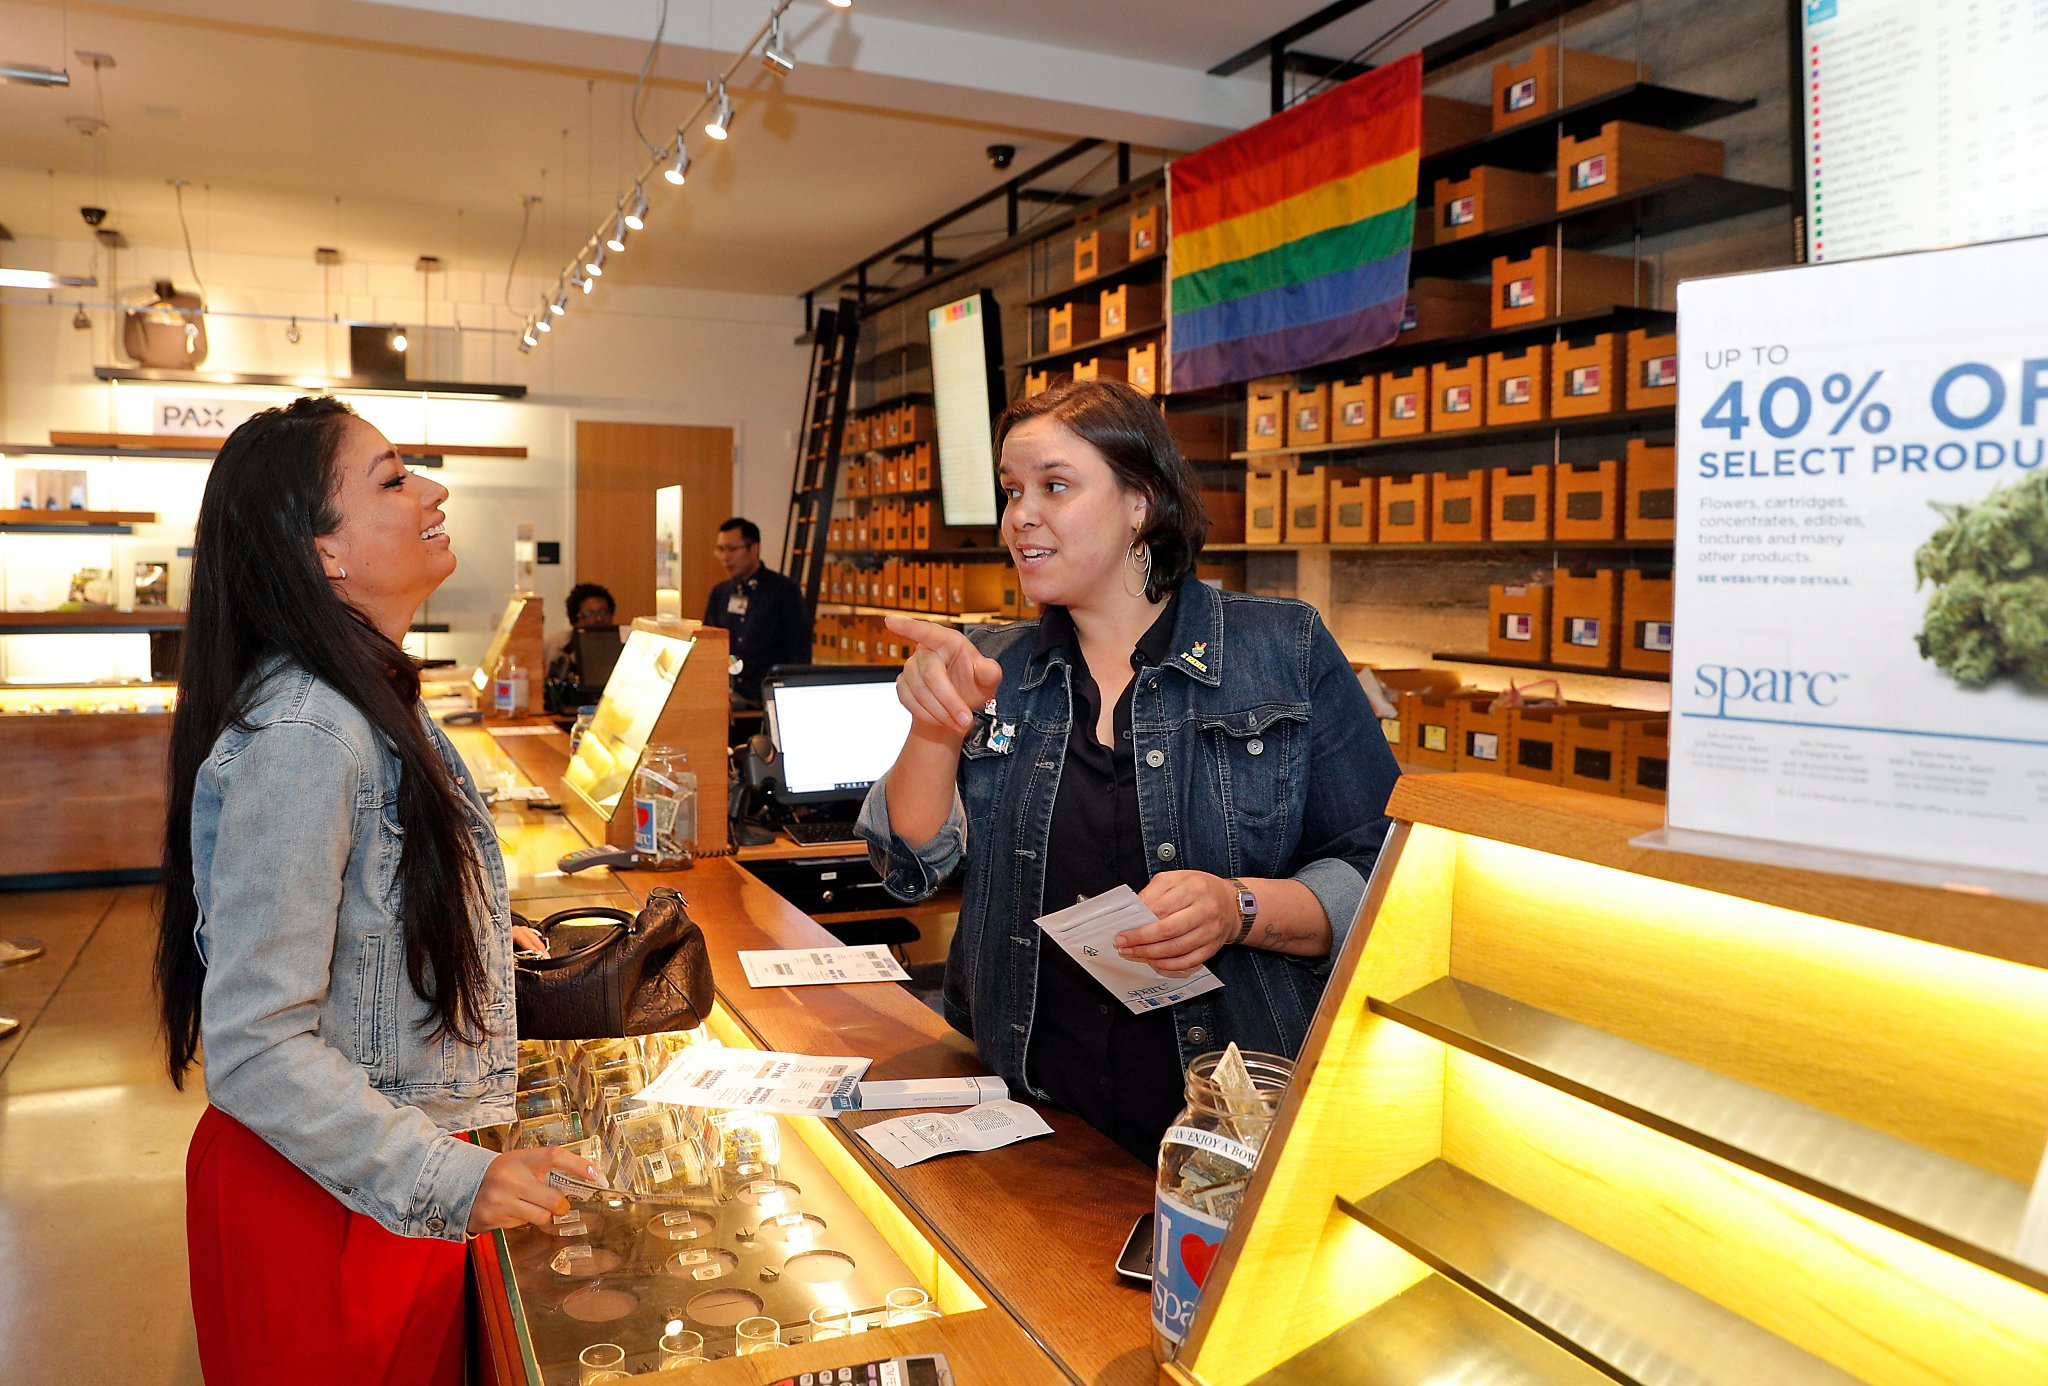 Cheap cannabis products available before new California